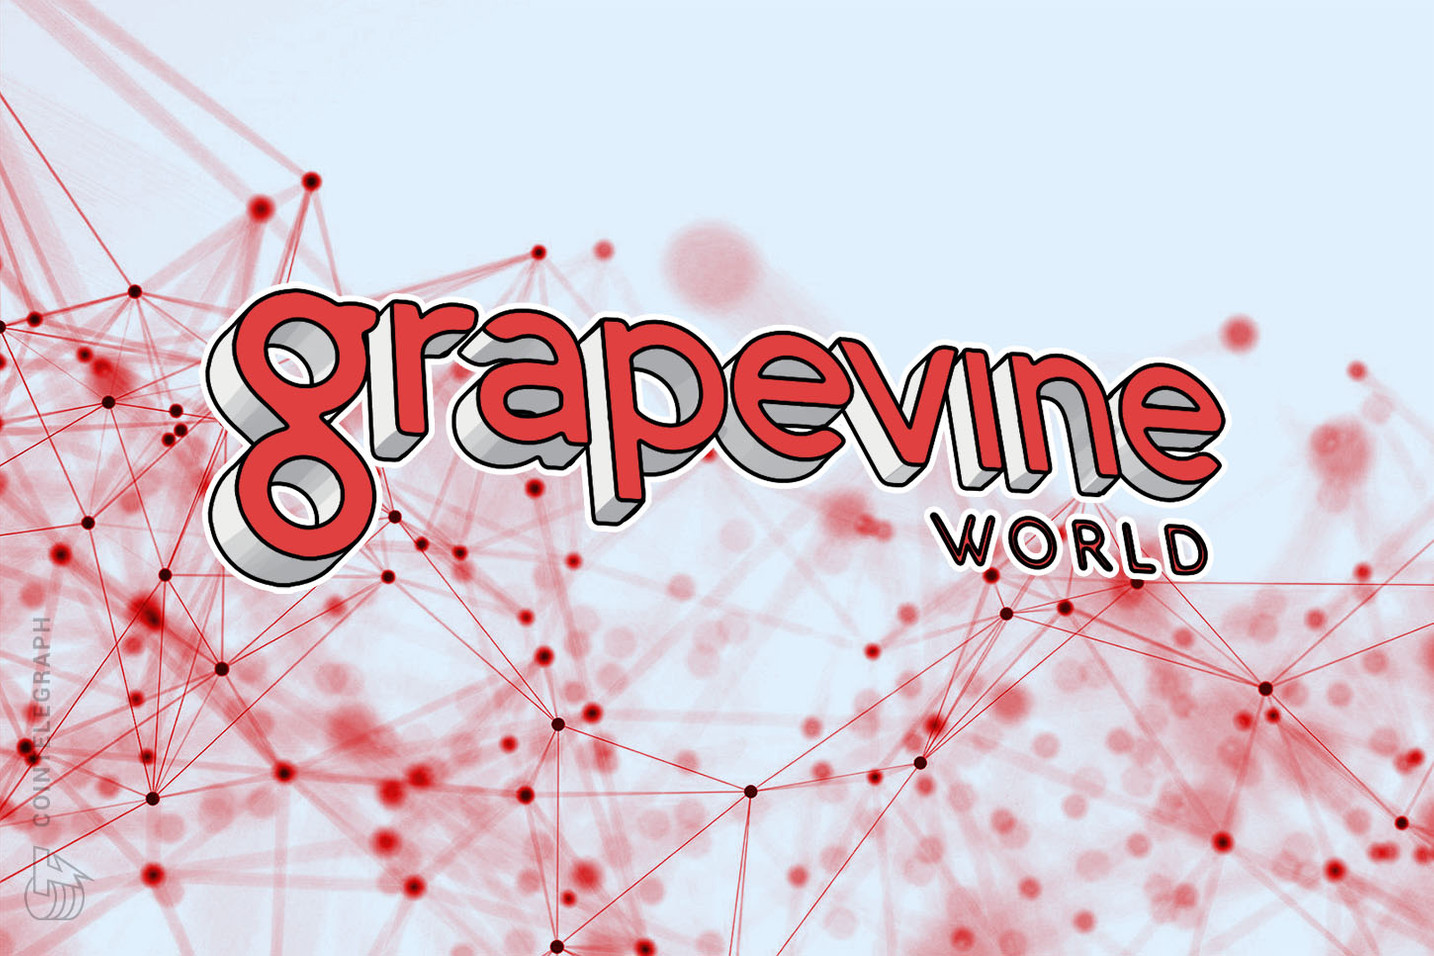 Blockchain-Based Pilot for Exchange of Clinical Data Announced by Grapevine World in Collaboration with the University of Southampton and Tiani Spirit